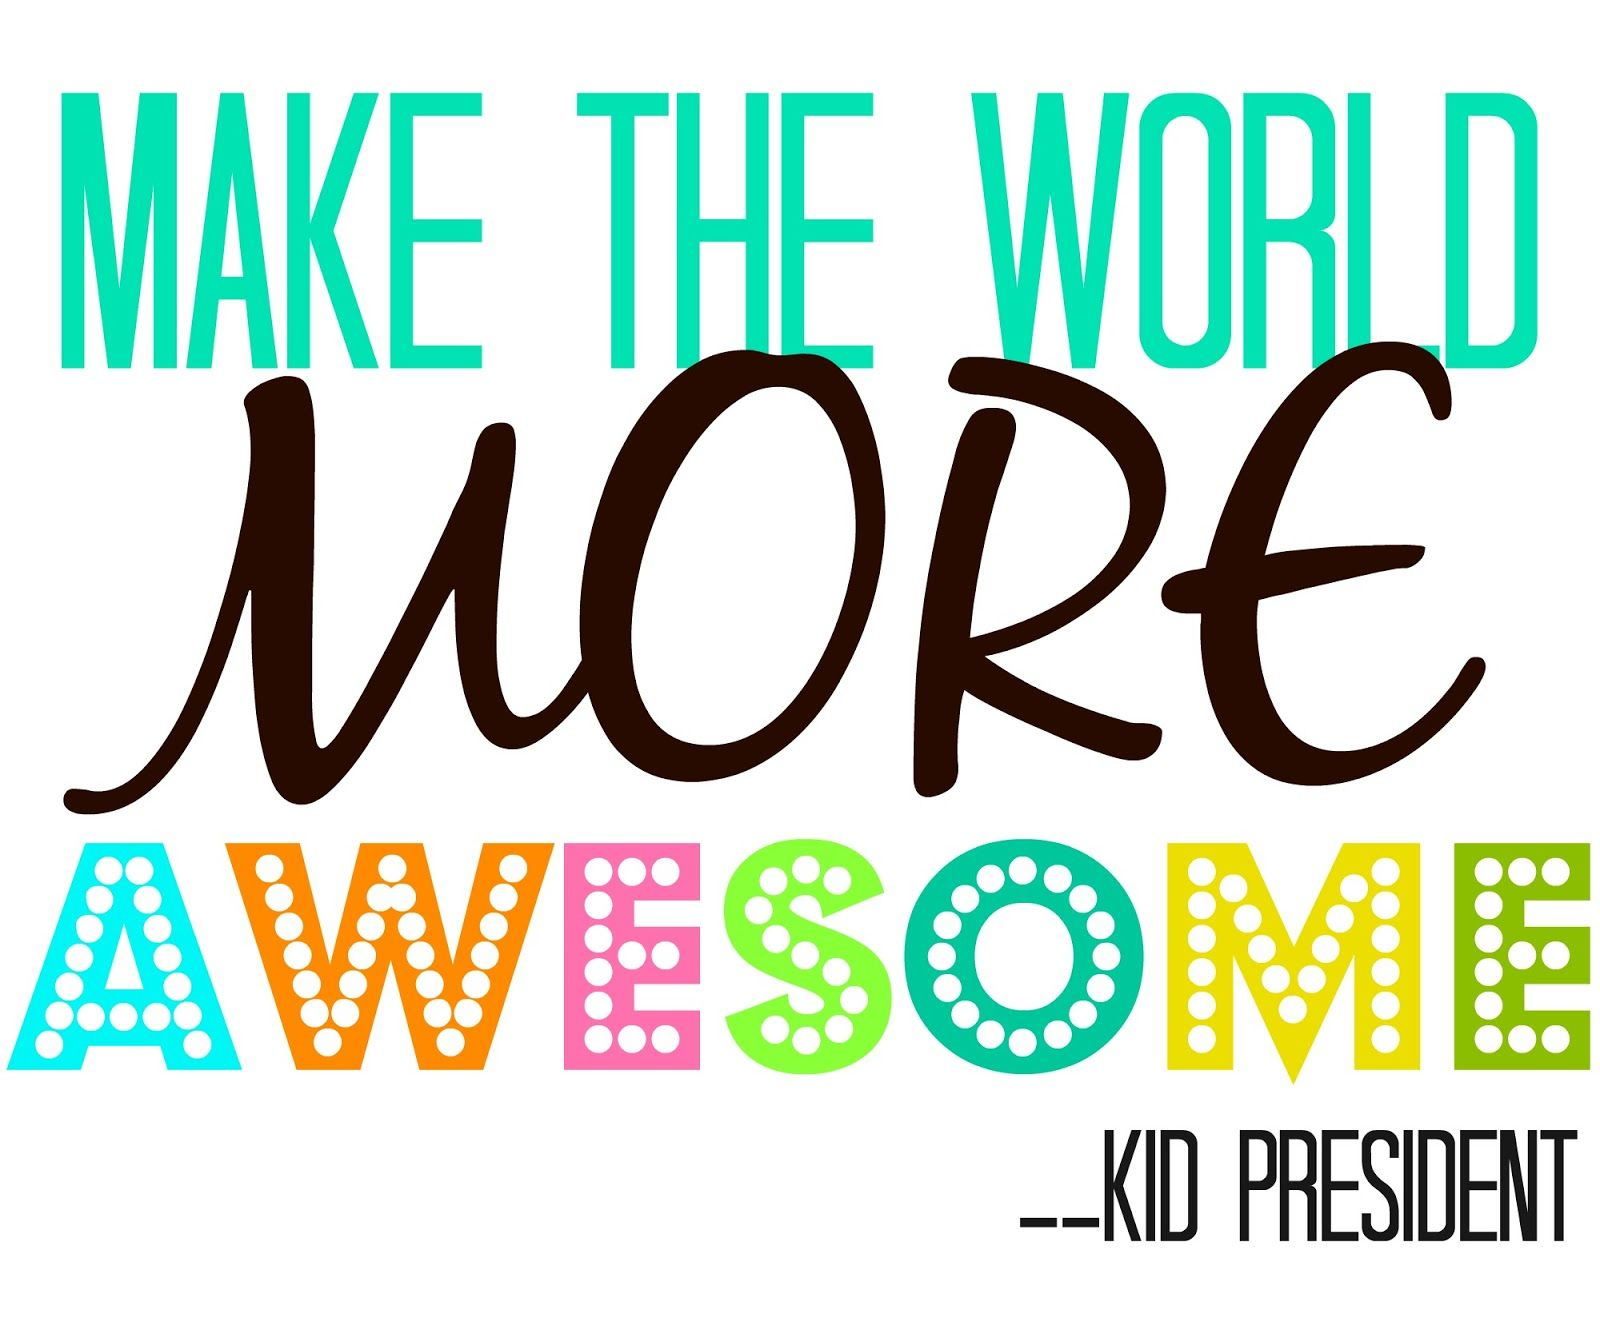 Famous tv character quotes quotesgram - Kid President Quotes Quotesgram